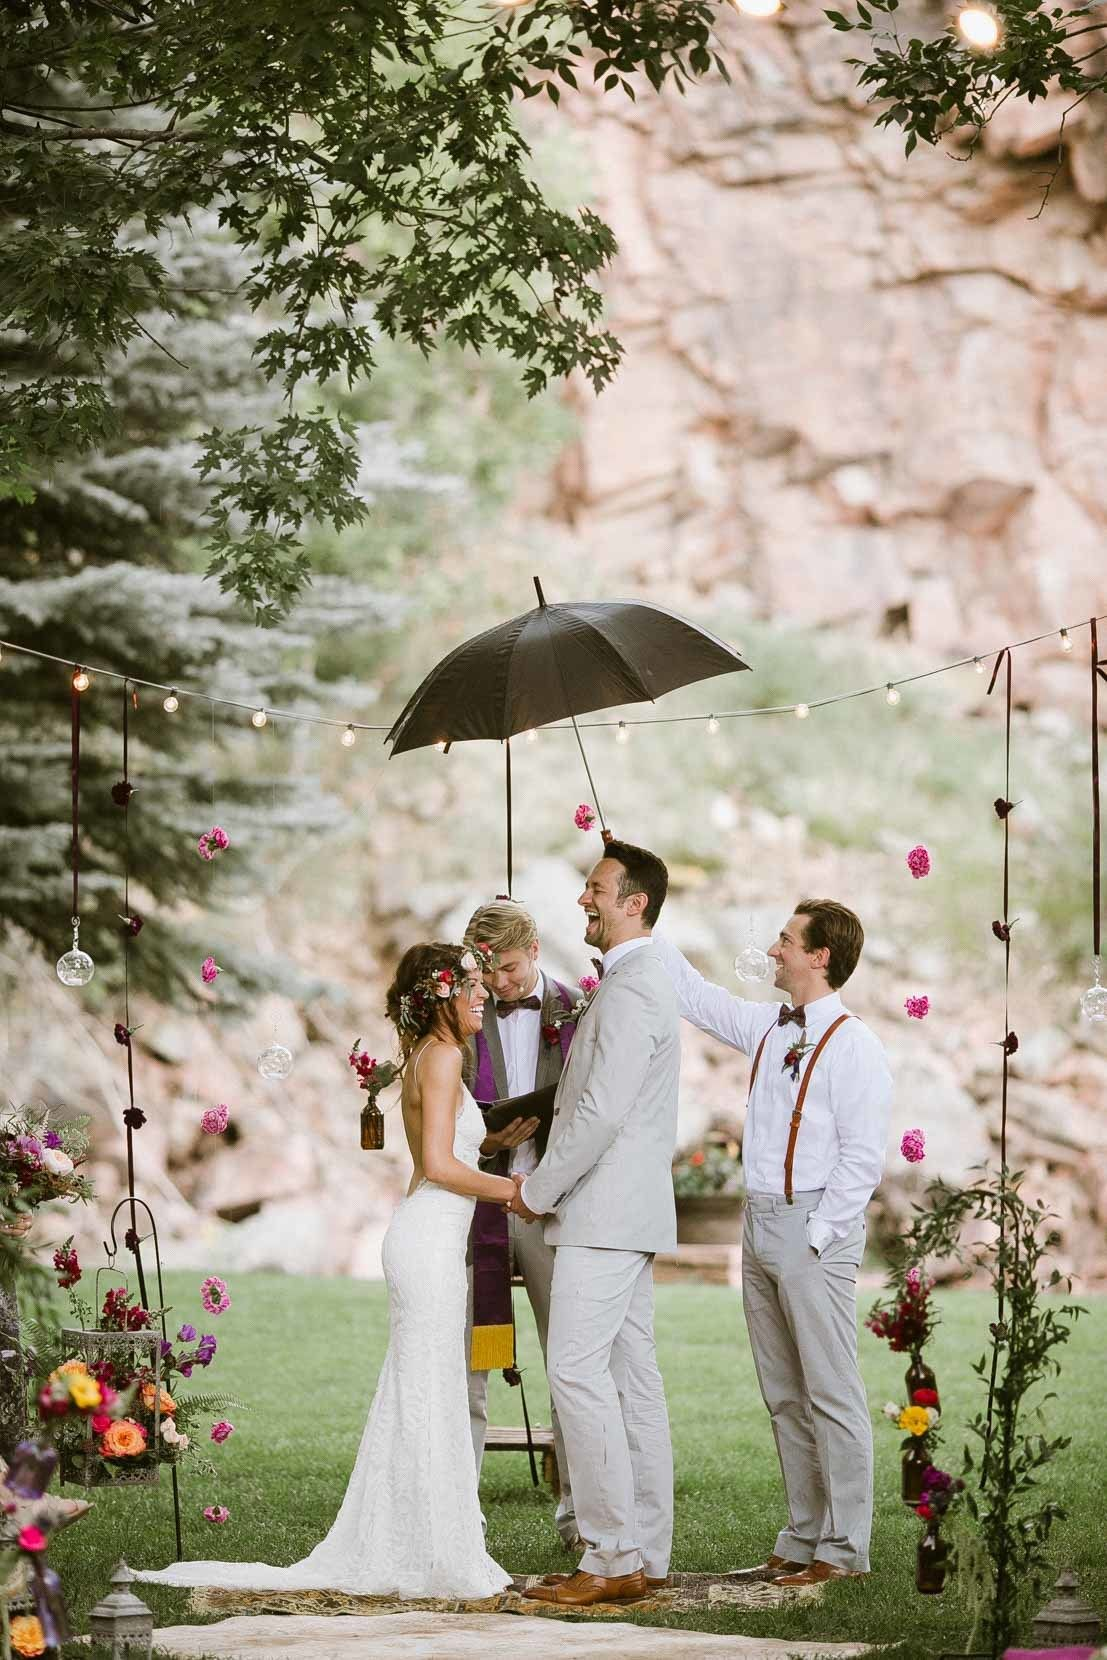 Muddy aisle, lost rings, incomplete decoration, name anything that  comprises a wedding nightmare for you and your client. As a professional  wedding planner, ...